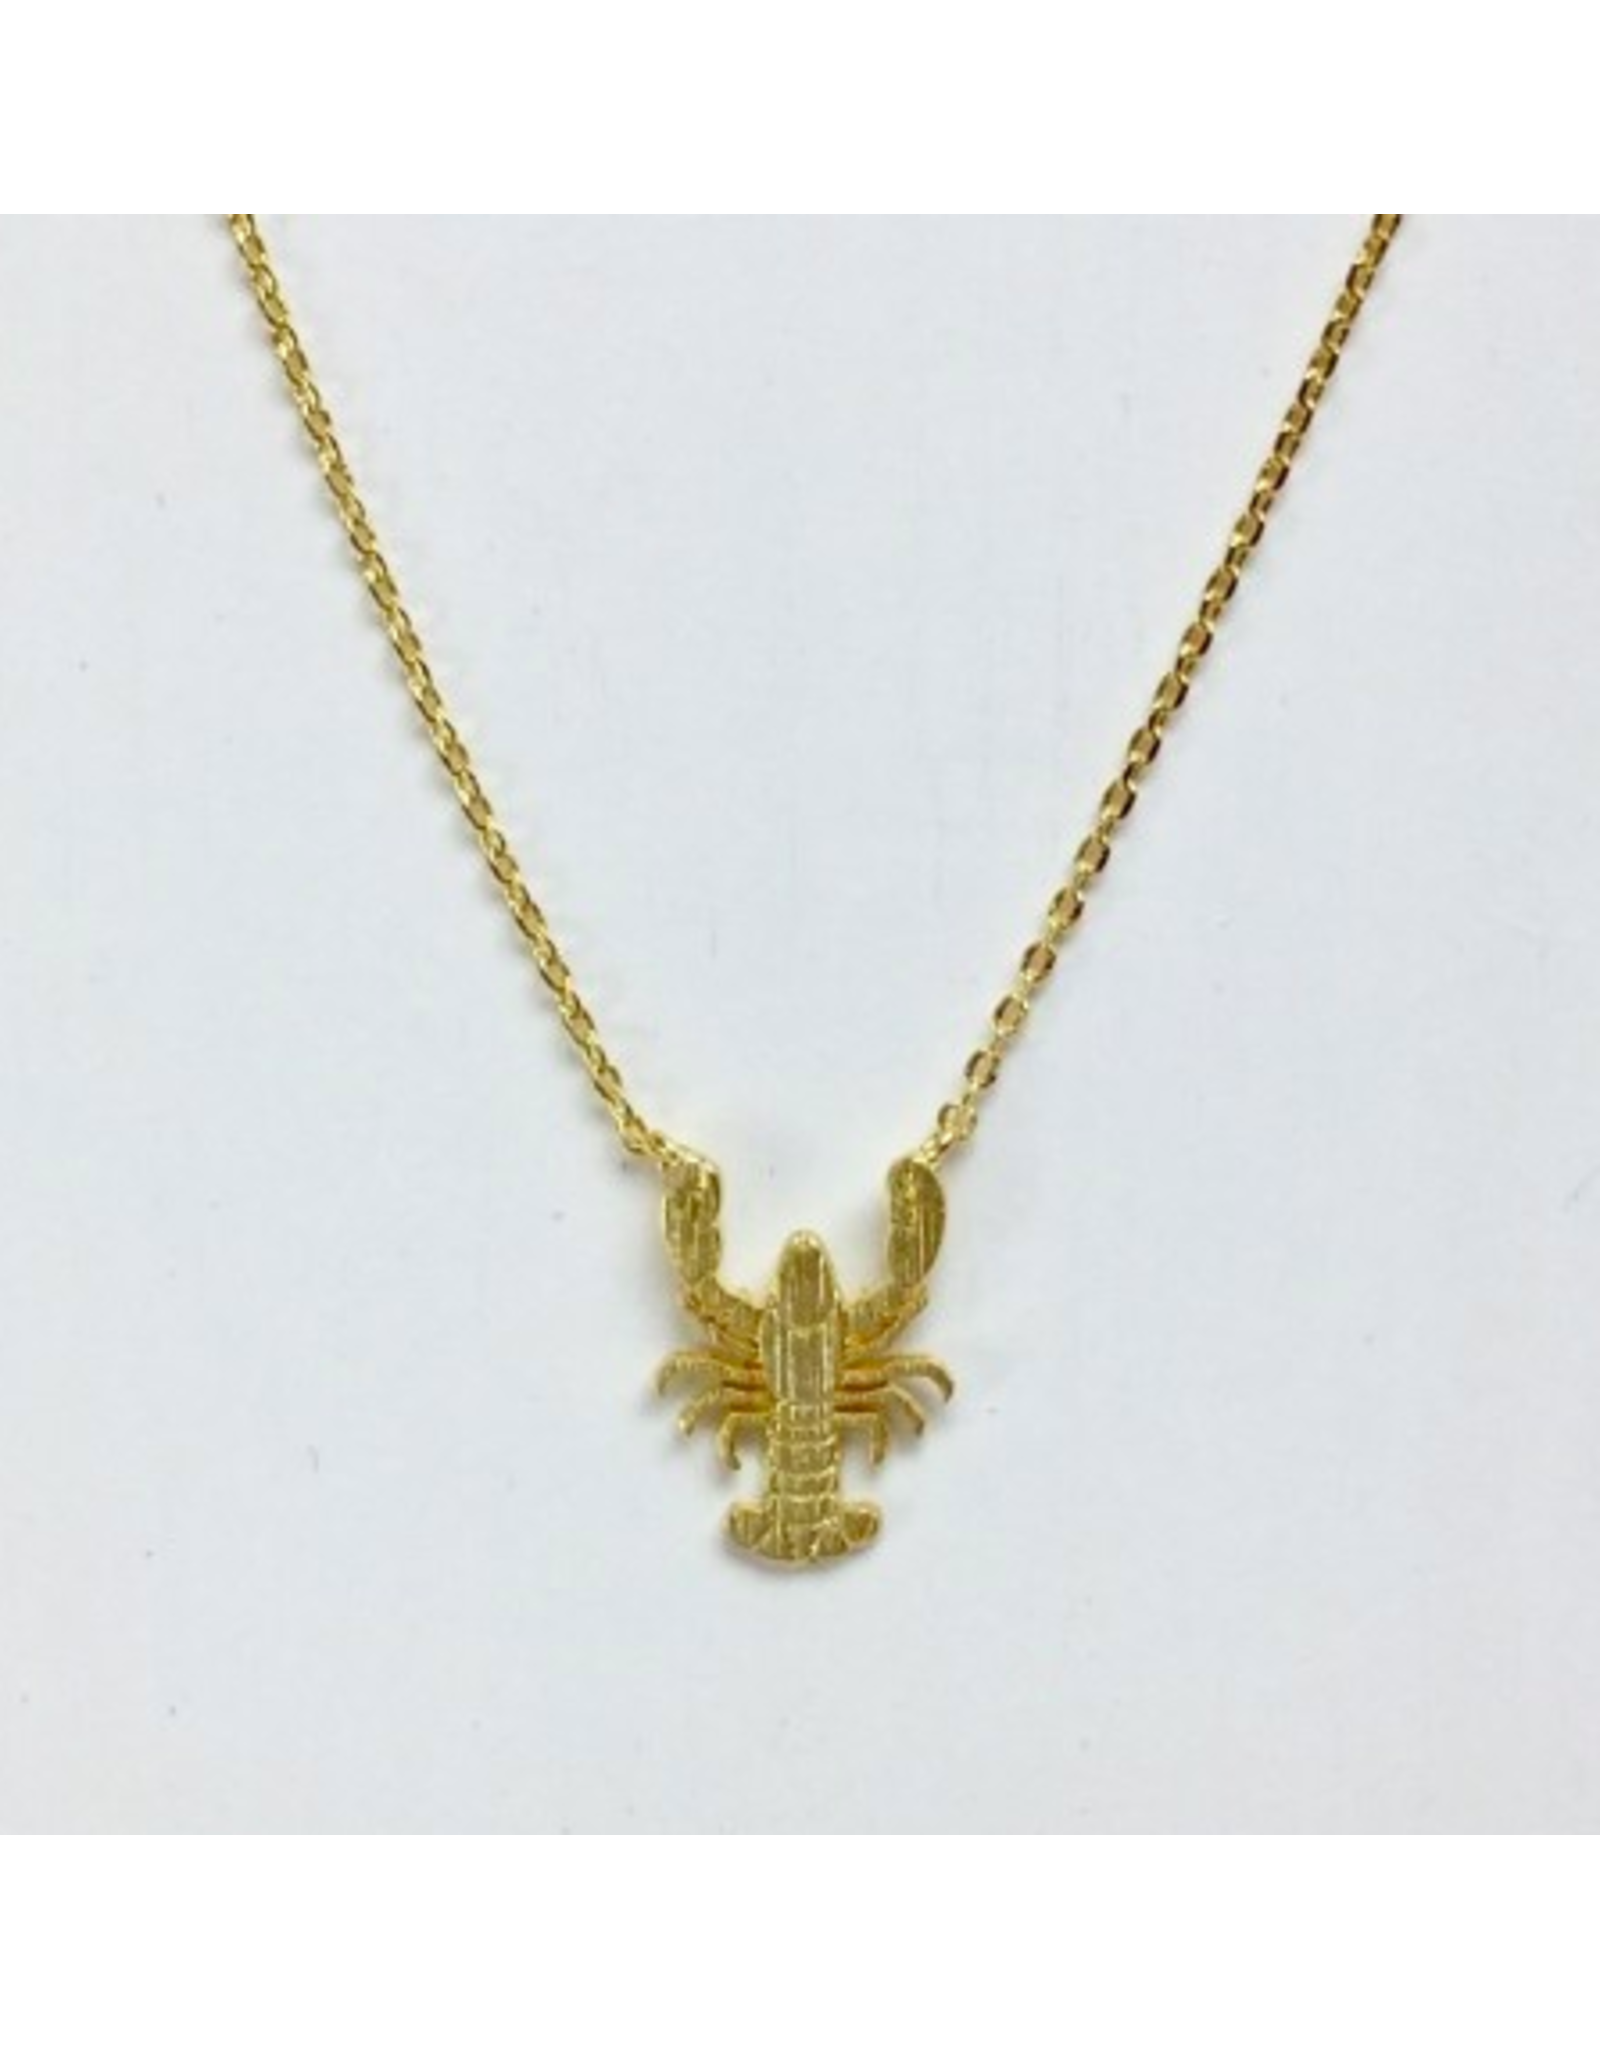 Lobster Necklace in Gold